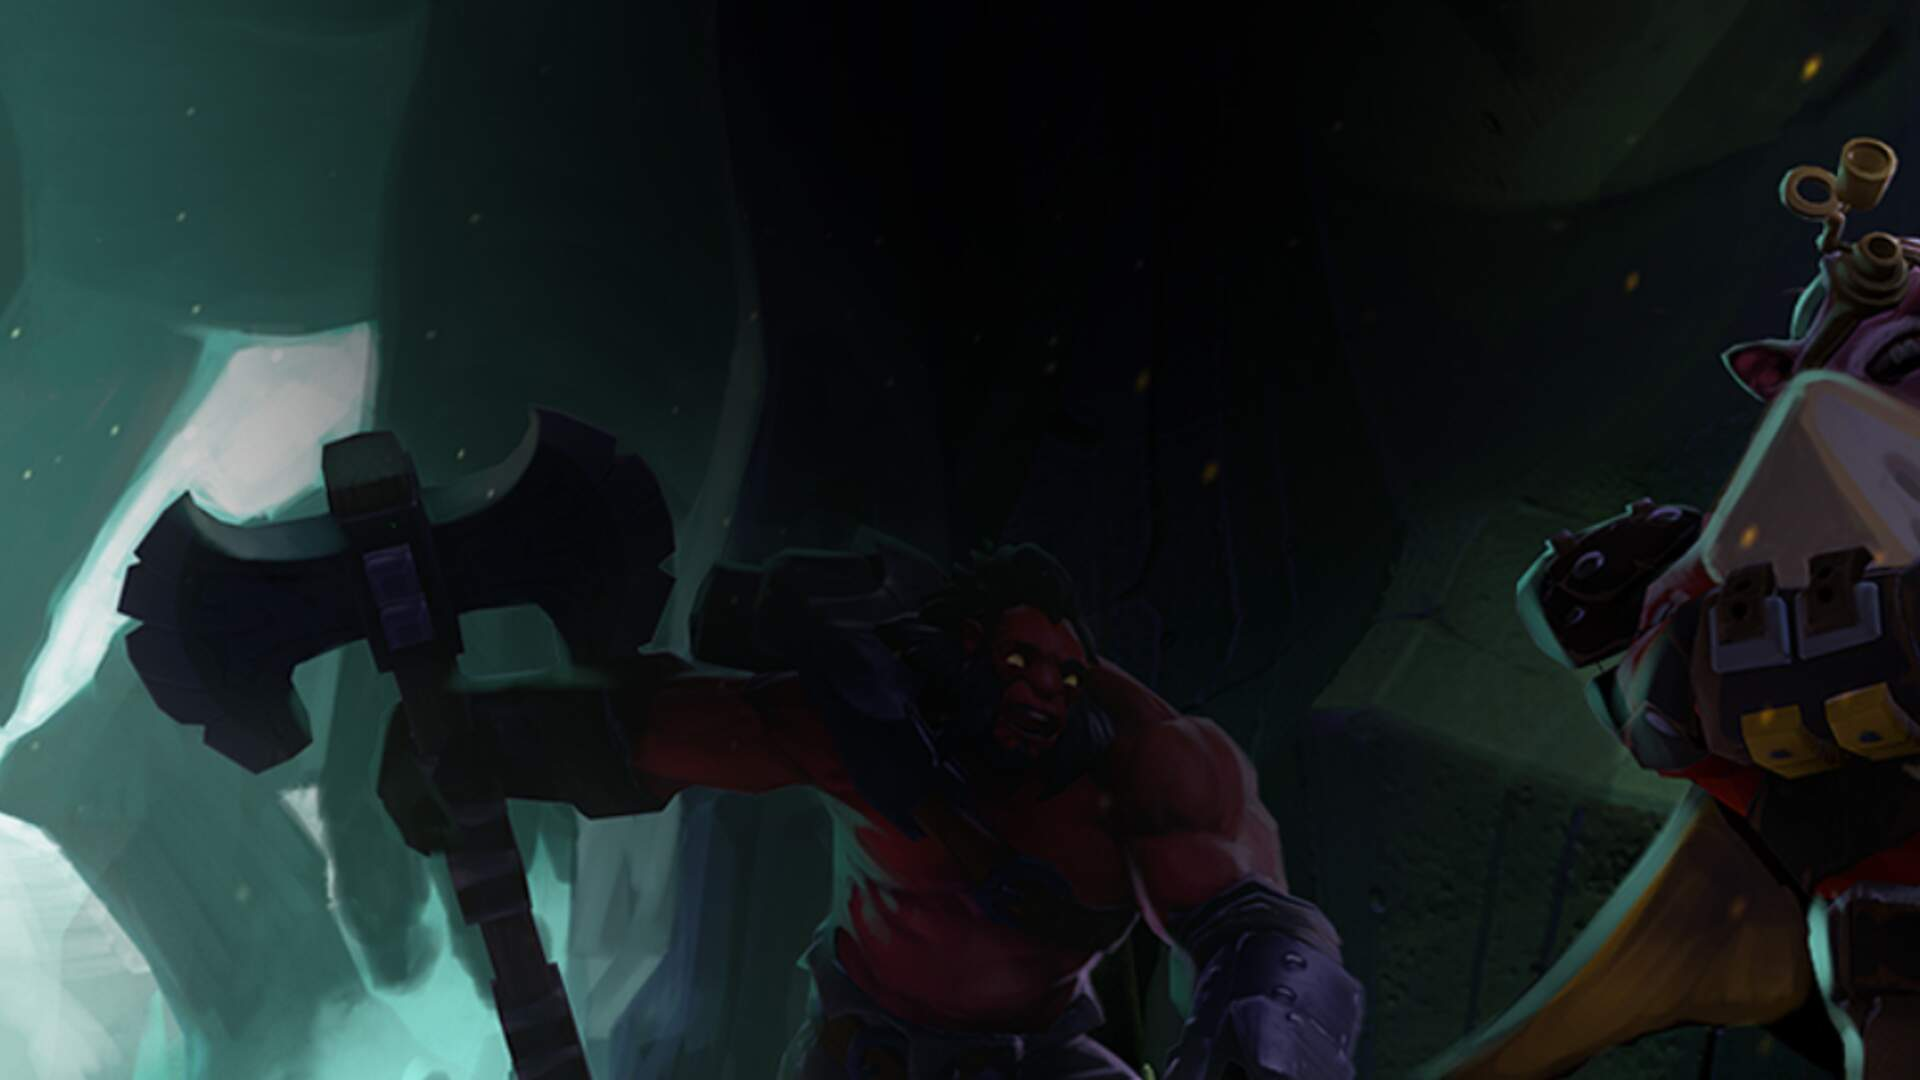 Dota 2 is the Next Game With a New Battle Royale Mode